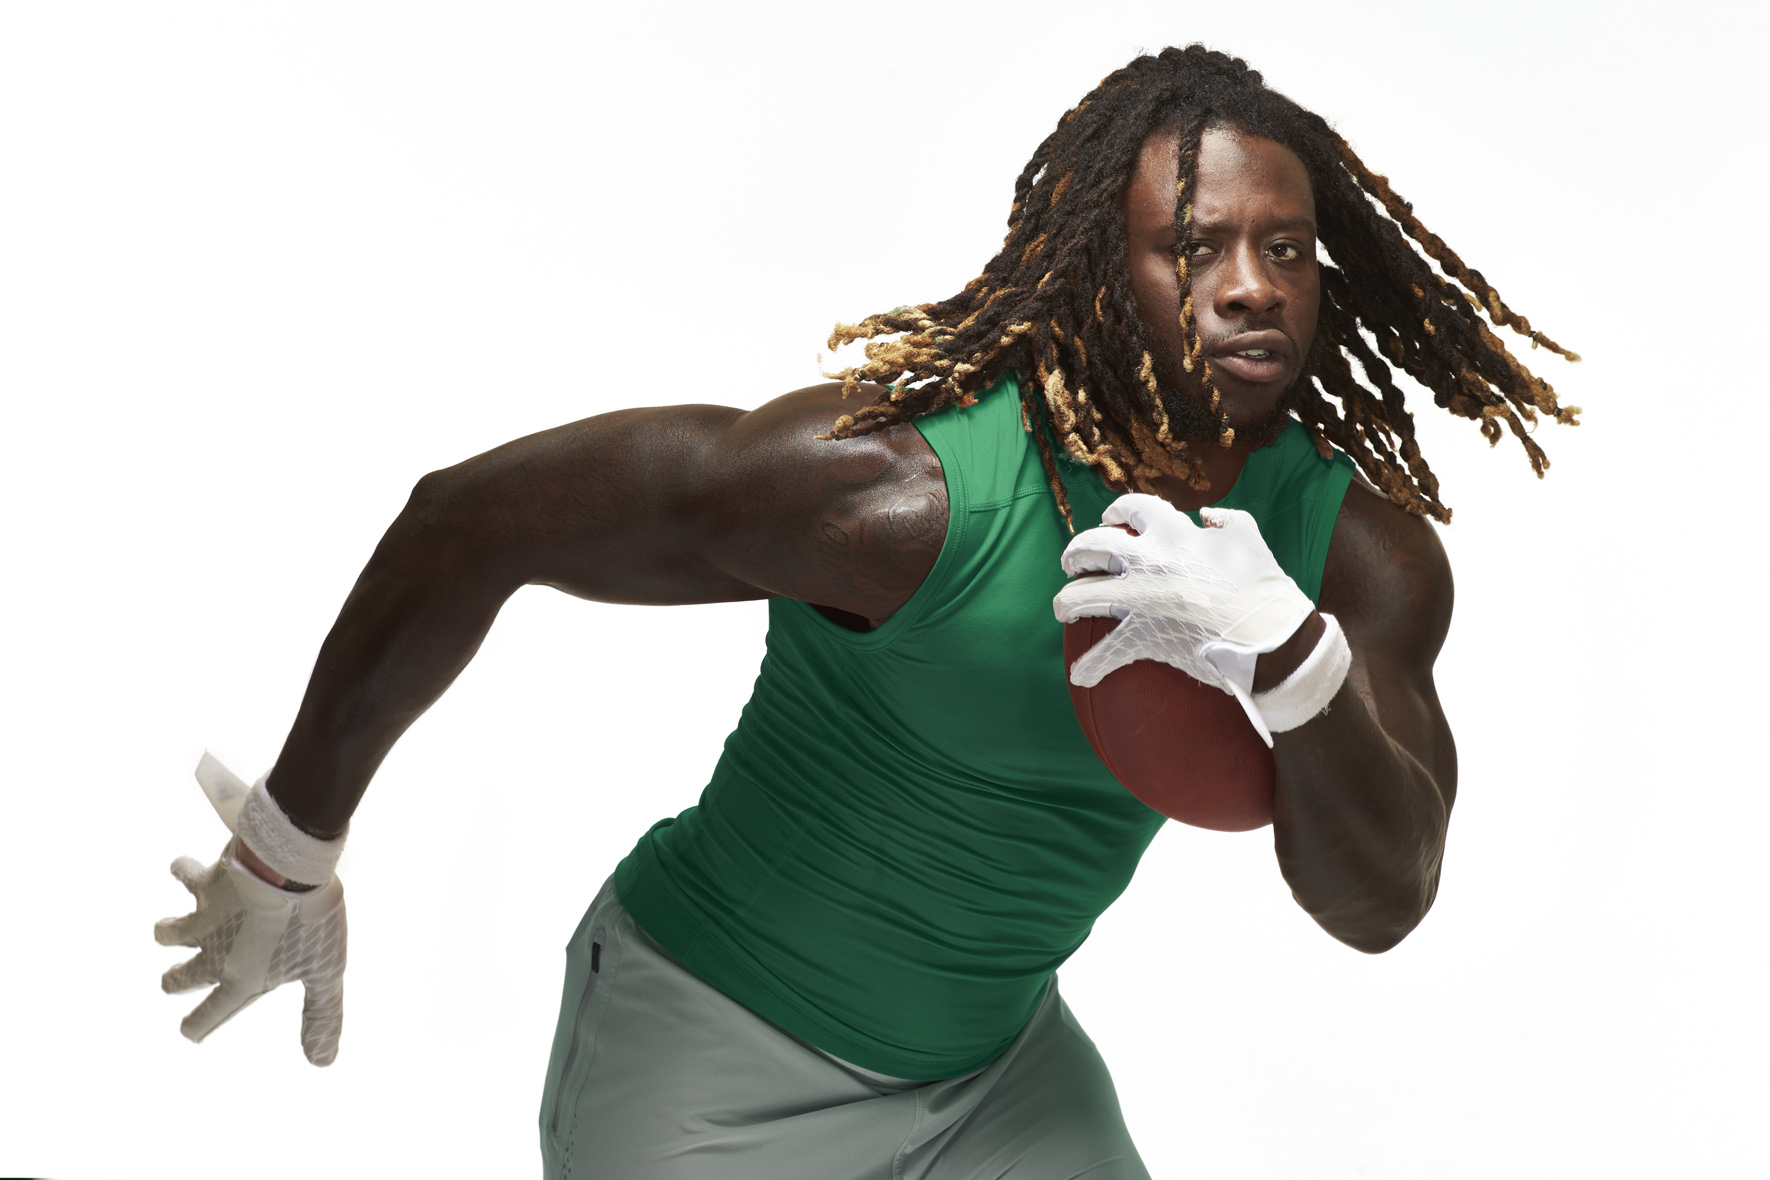 Jay Ajayi of Philadelphia Eagles photo by Monte Isom